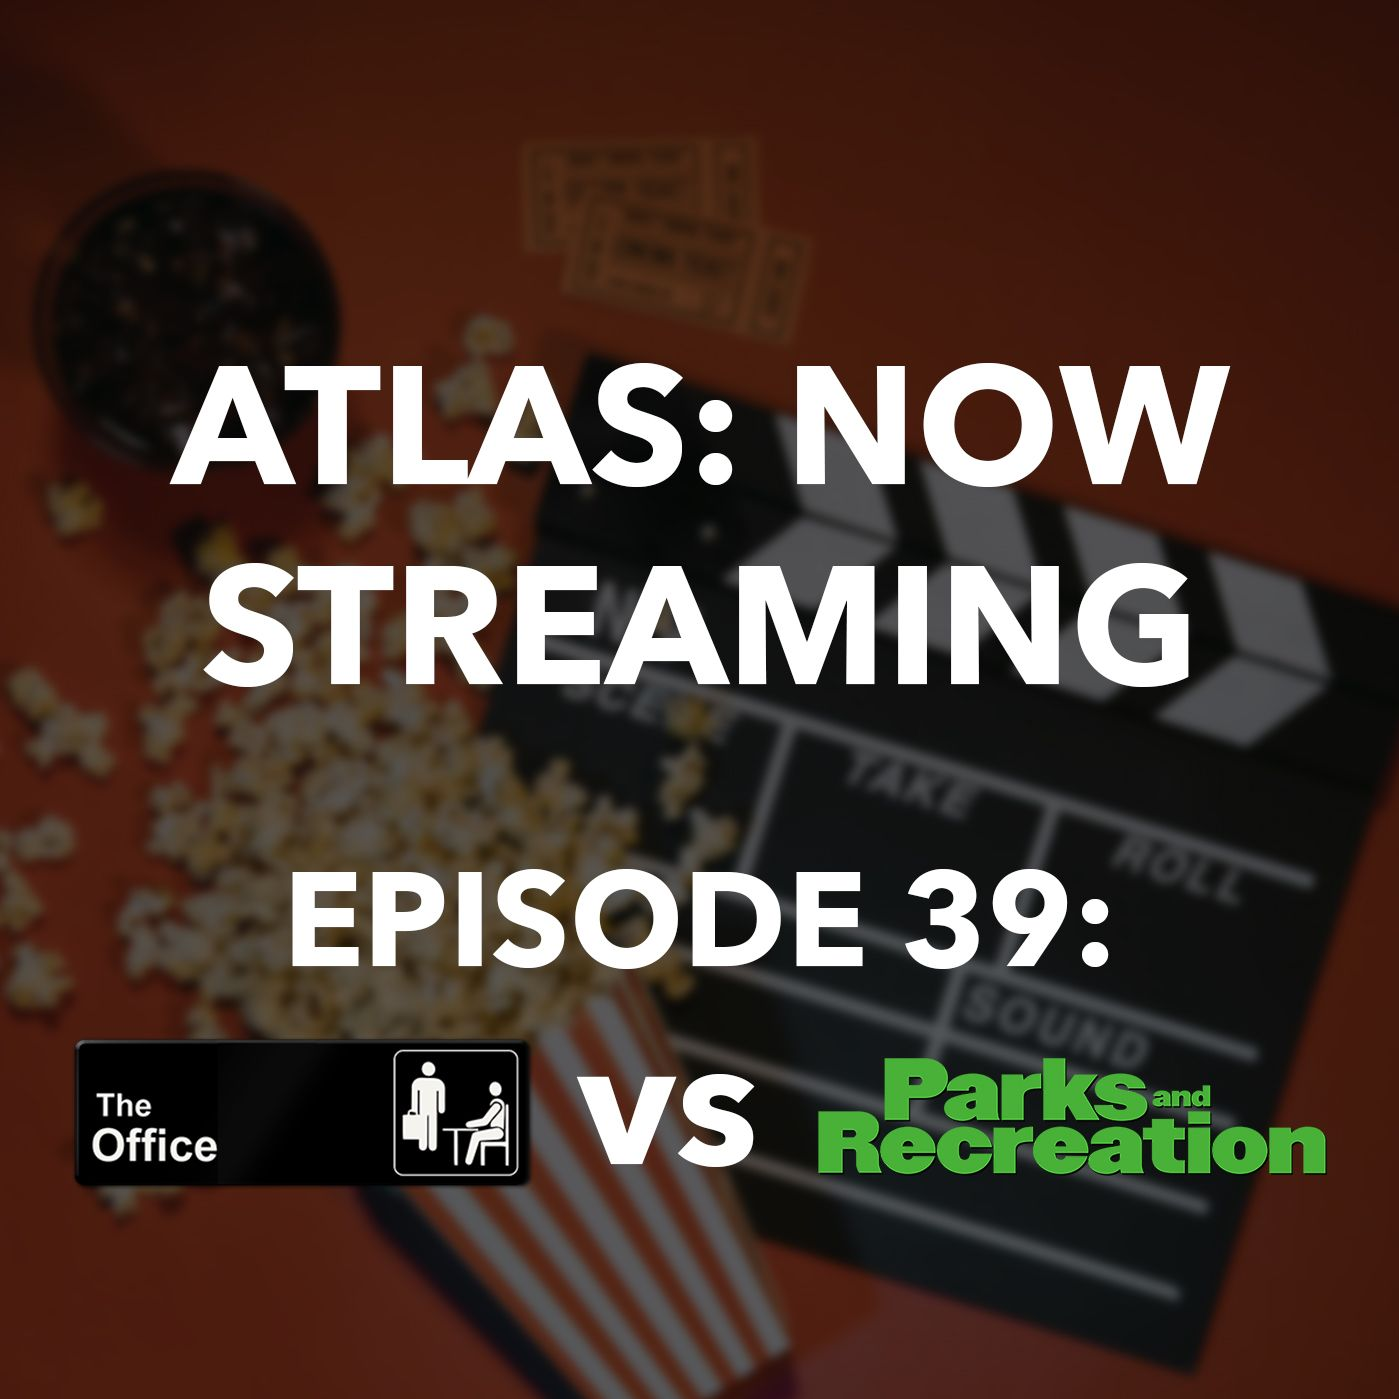 The Office vs. Parks and Rec - Atlas: Now Streaming Episode 39